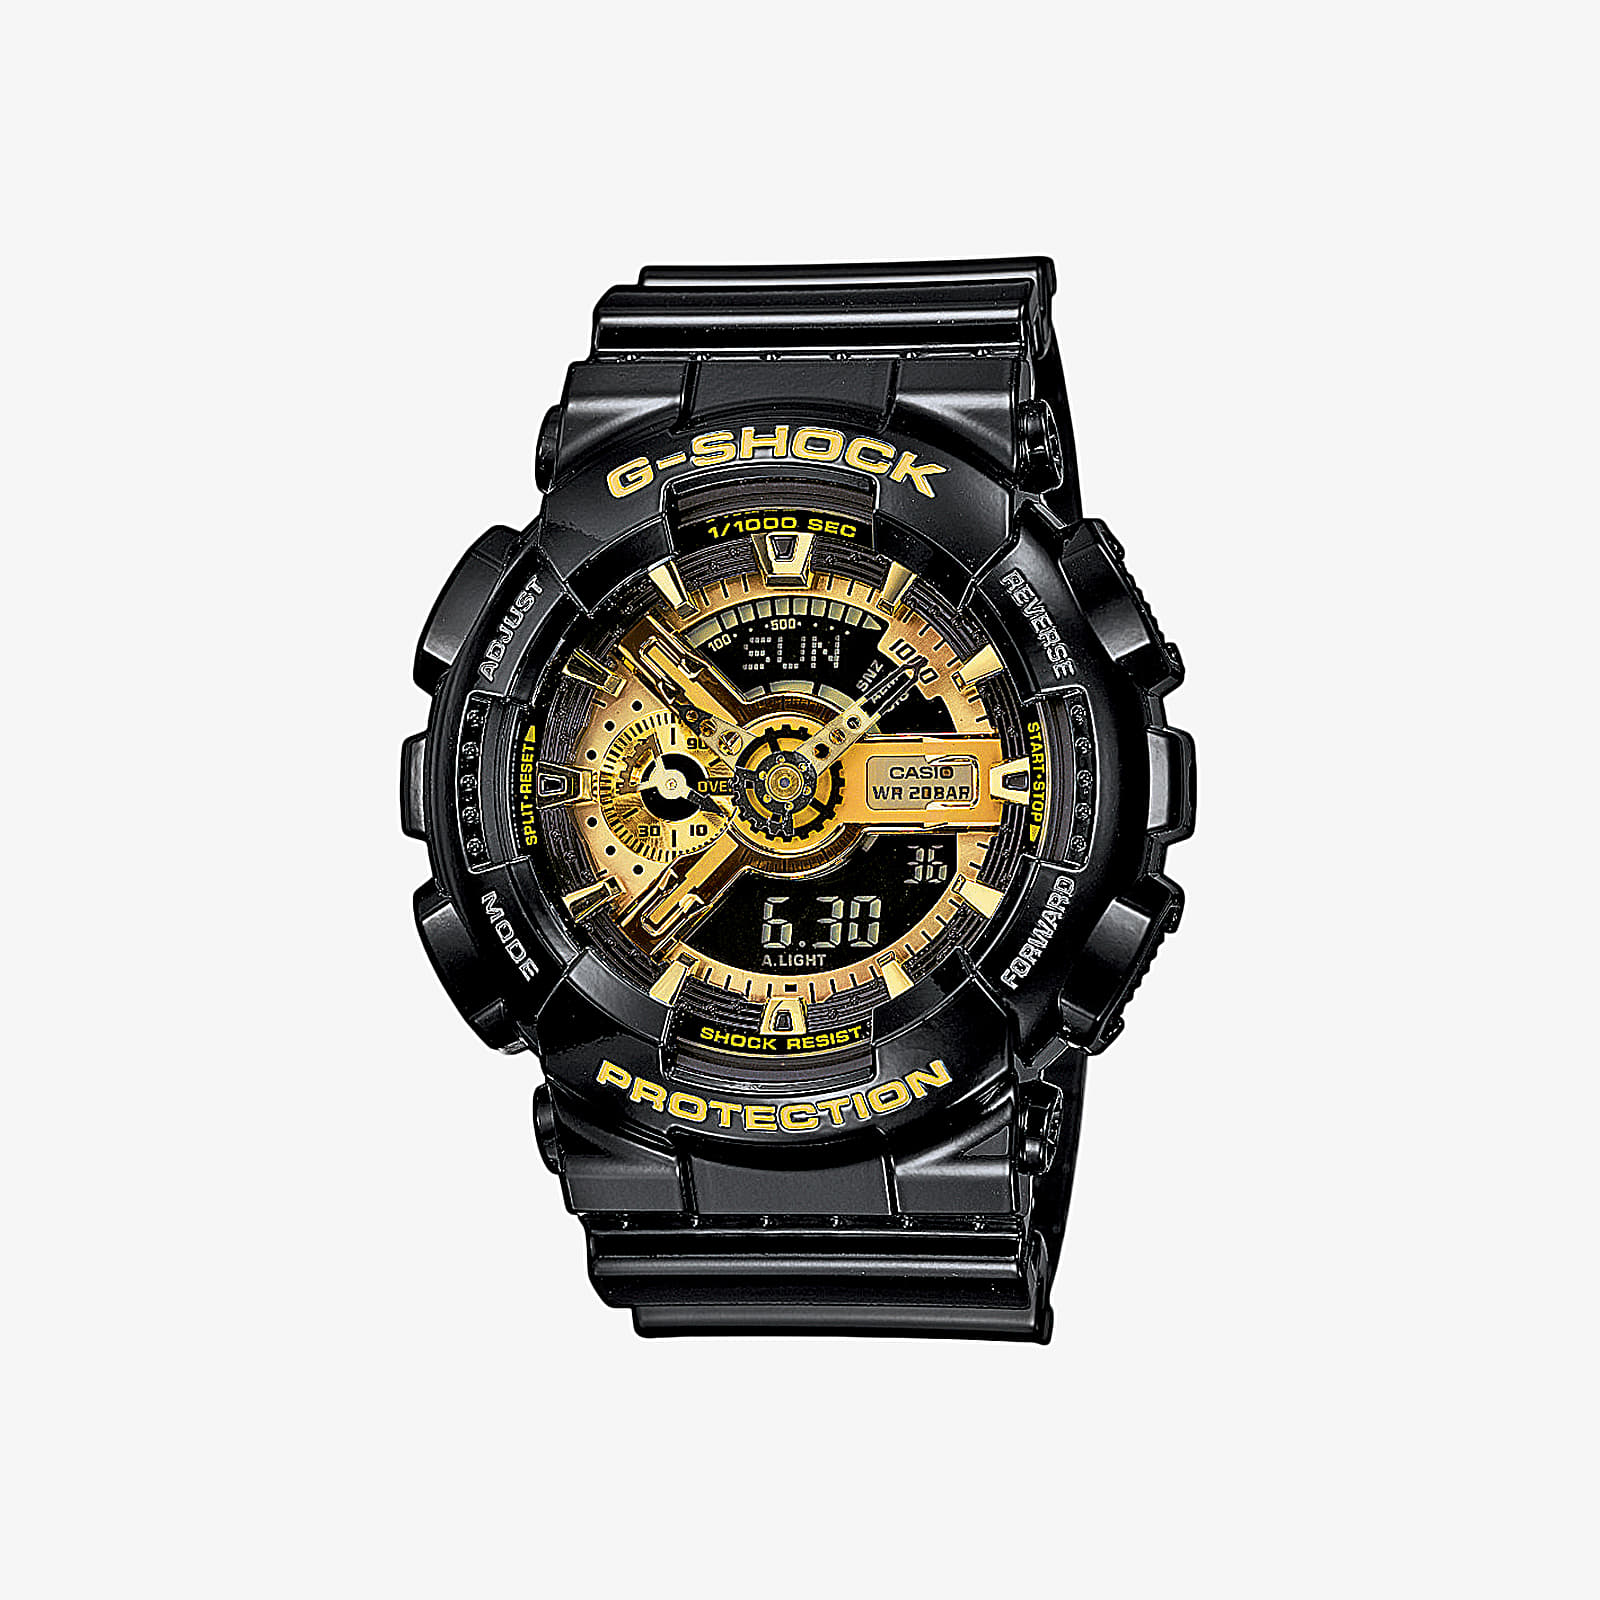 Watches Casio G-Shock GA-110GB-1AER Watch Black